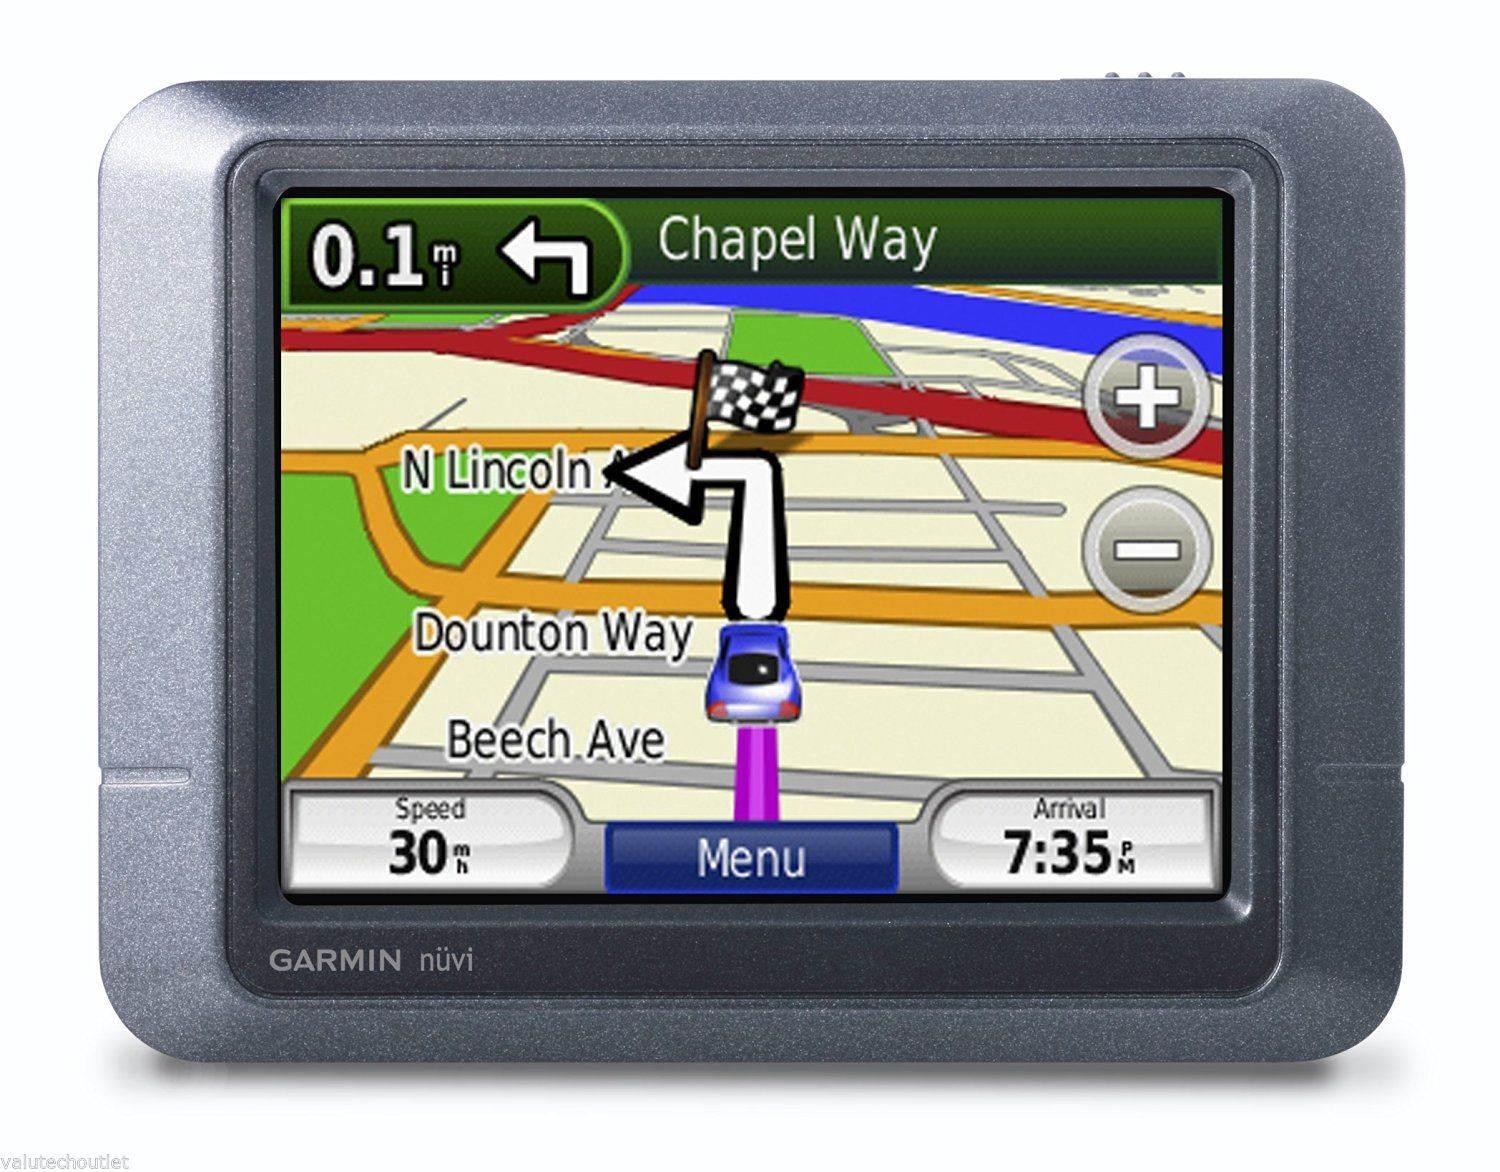 7 way navigation 4 round trailer wiring diagram garmin nuvi 205 3 5 touchscreen portable gps system with 2d or 3d maps and travel tools gray new open box walmart com